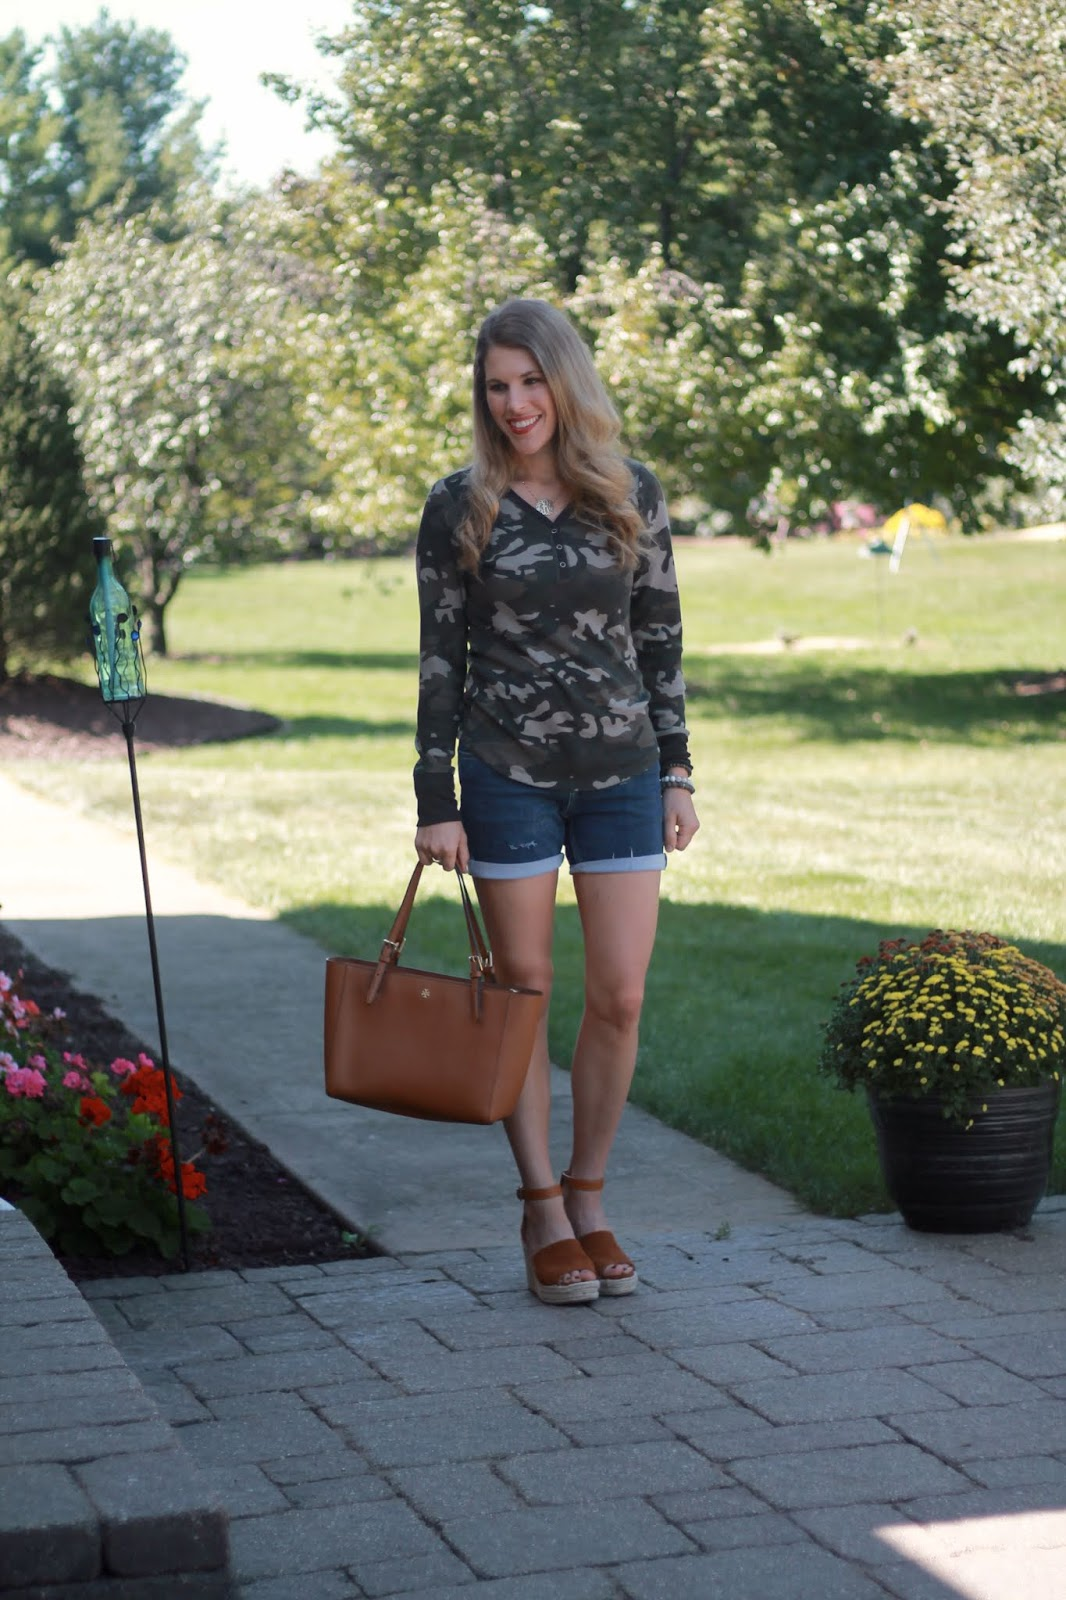 camo henley, distressed denim shorts, Tory Burch cognac tote, wedge espadrille sandals